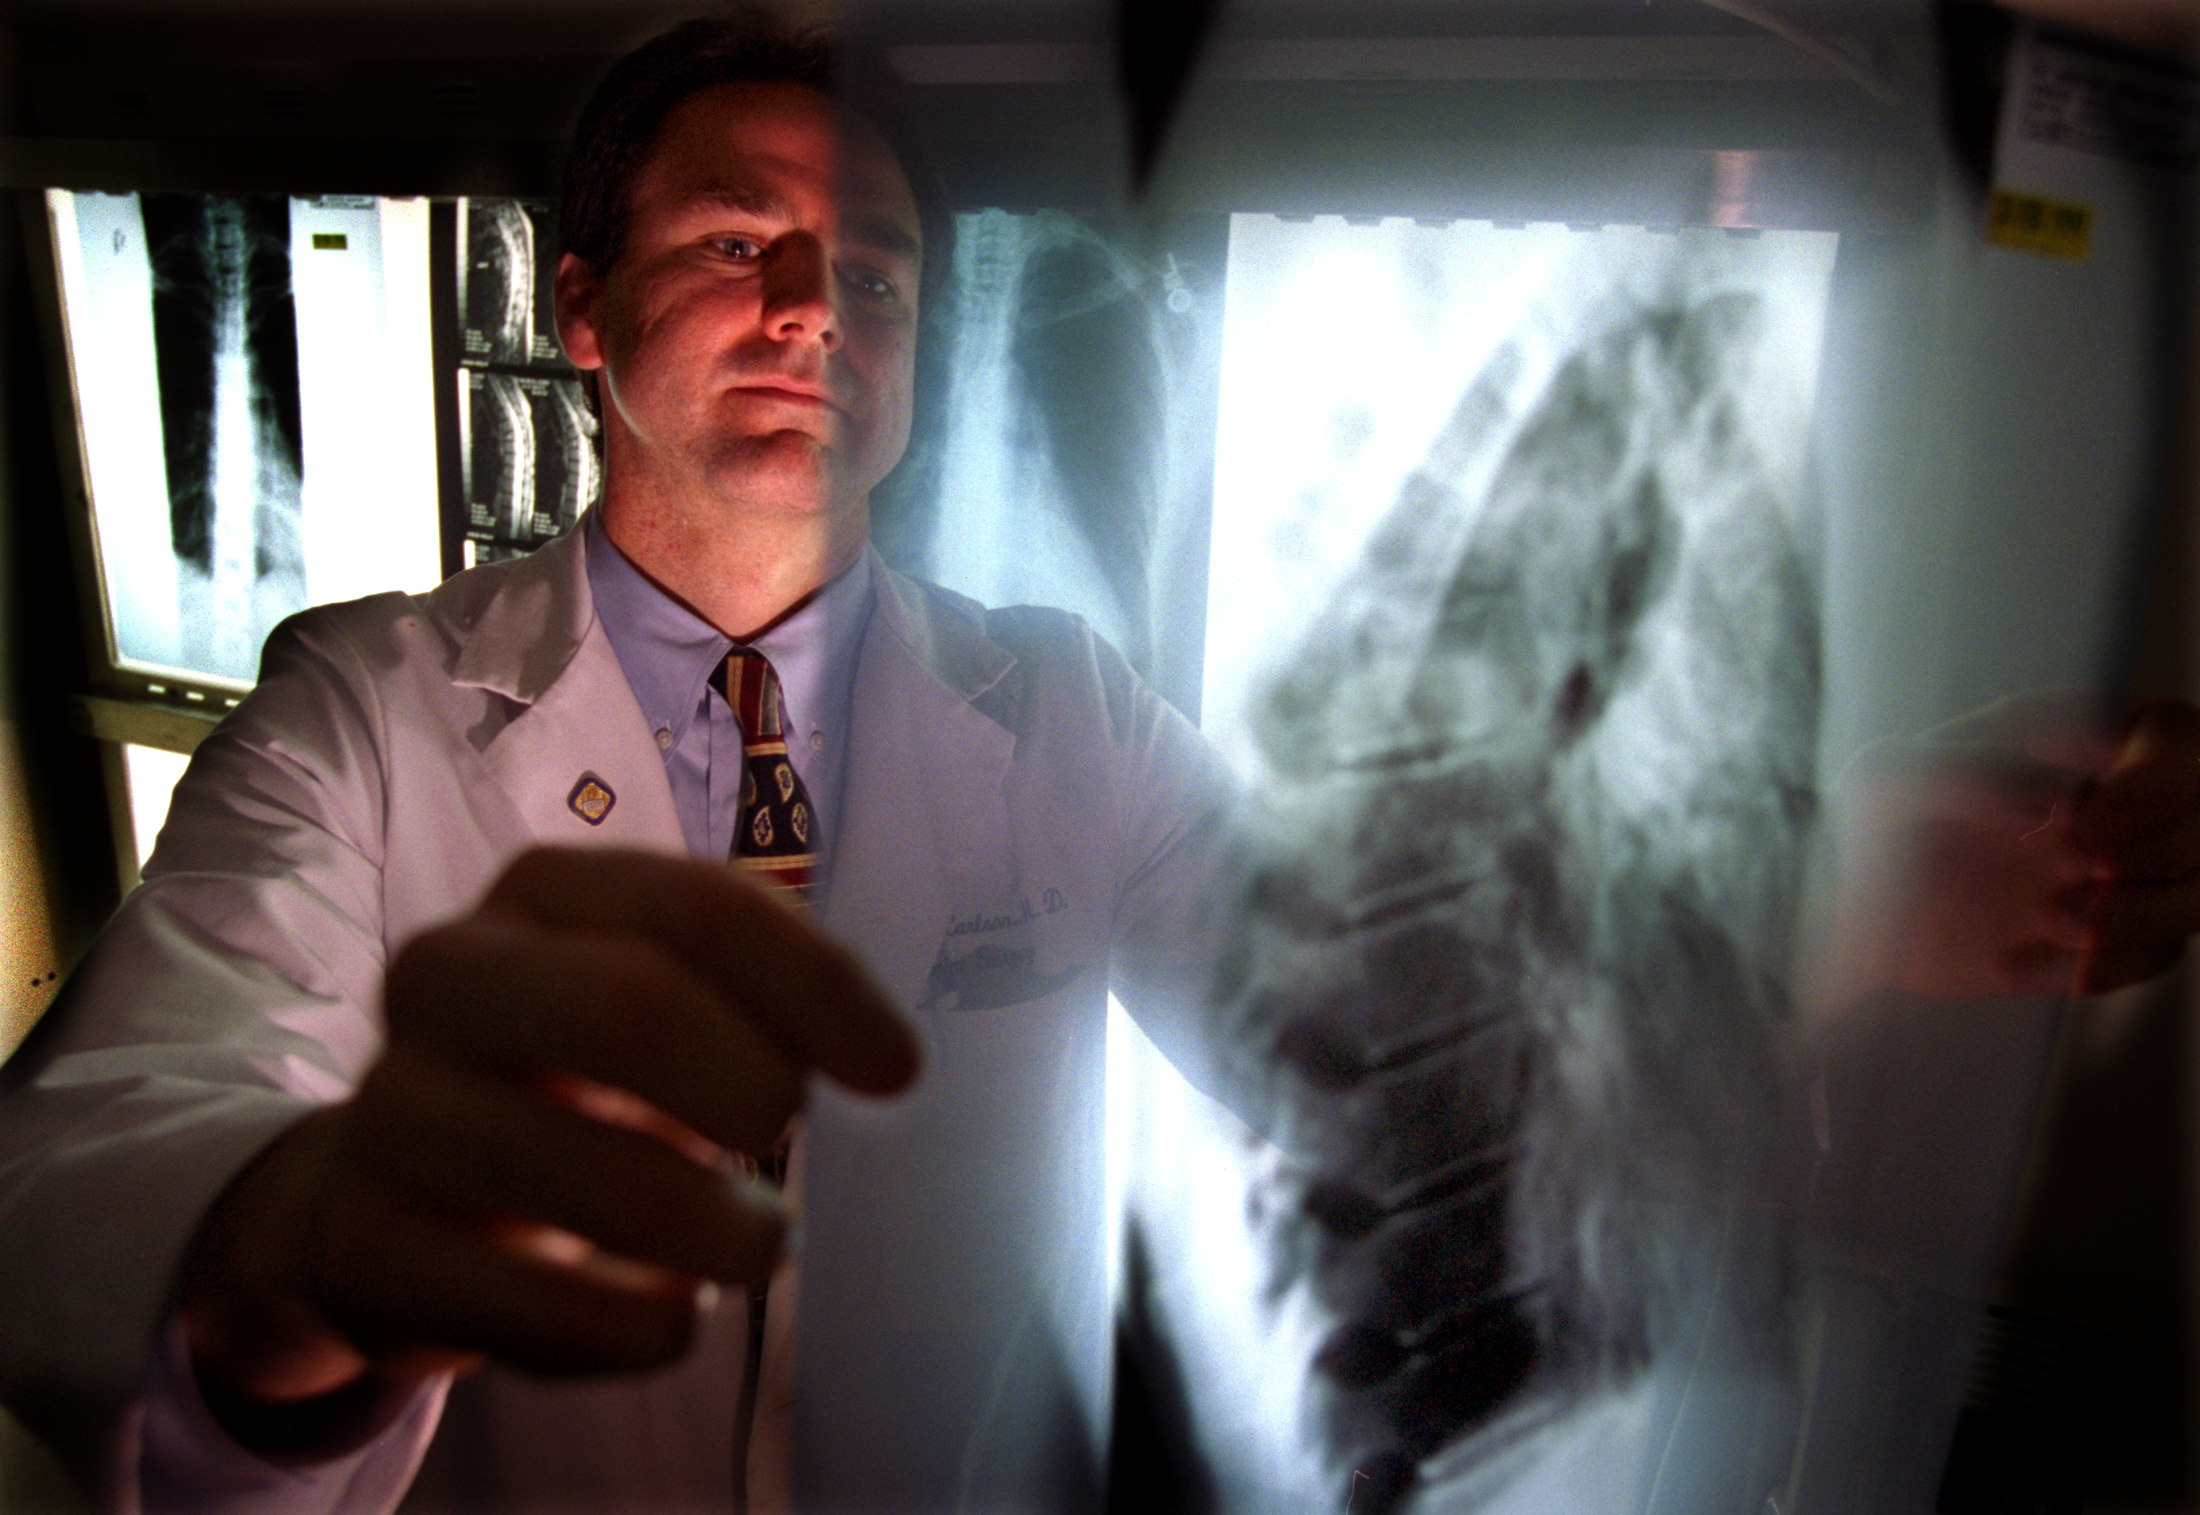 A doctor reviews x-rays of a patient suffering from a form of cancer called multiple myeloma.